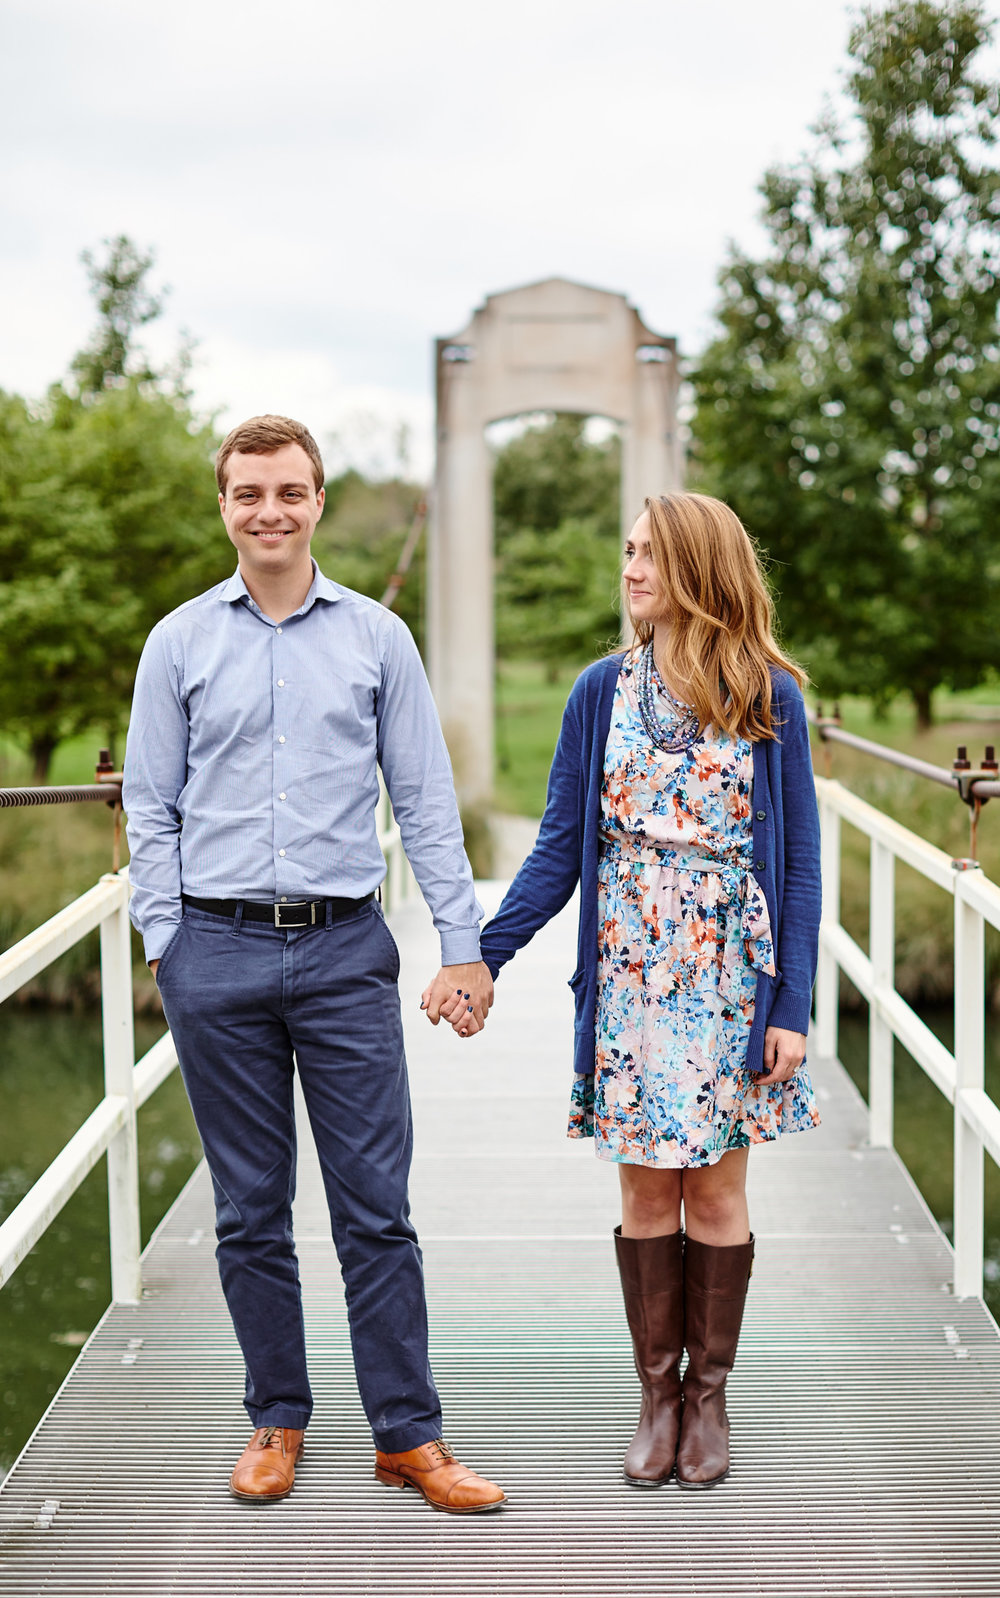 Science Center in Forest Park Engagement Session by St Louis Wedding Photographers Oldani Photography 42.jpg